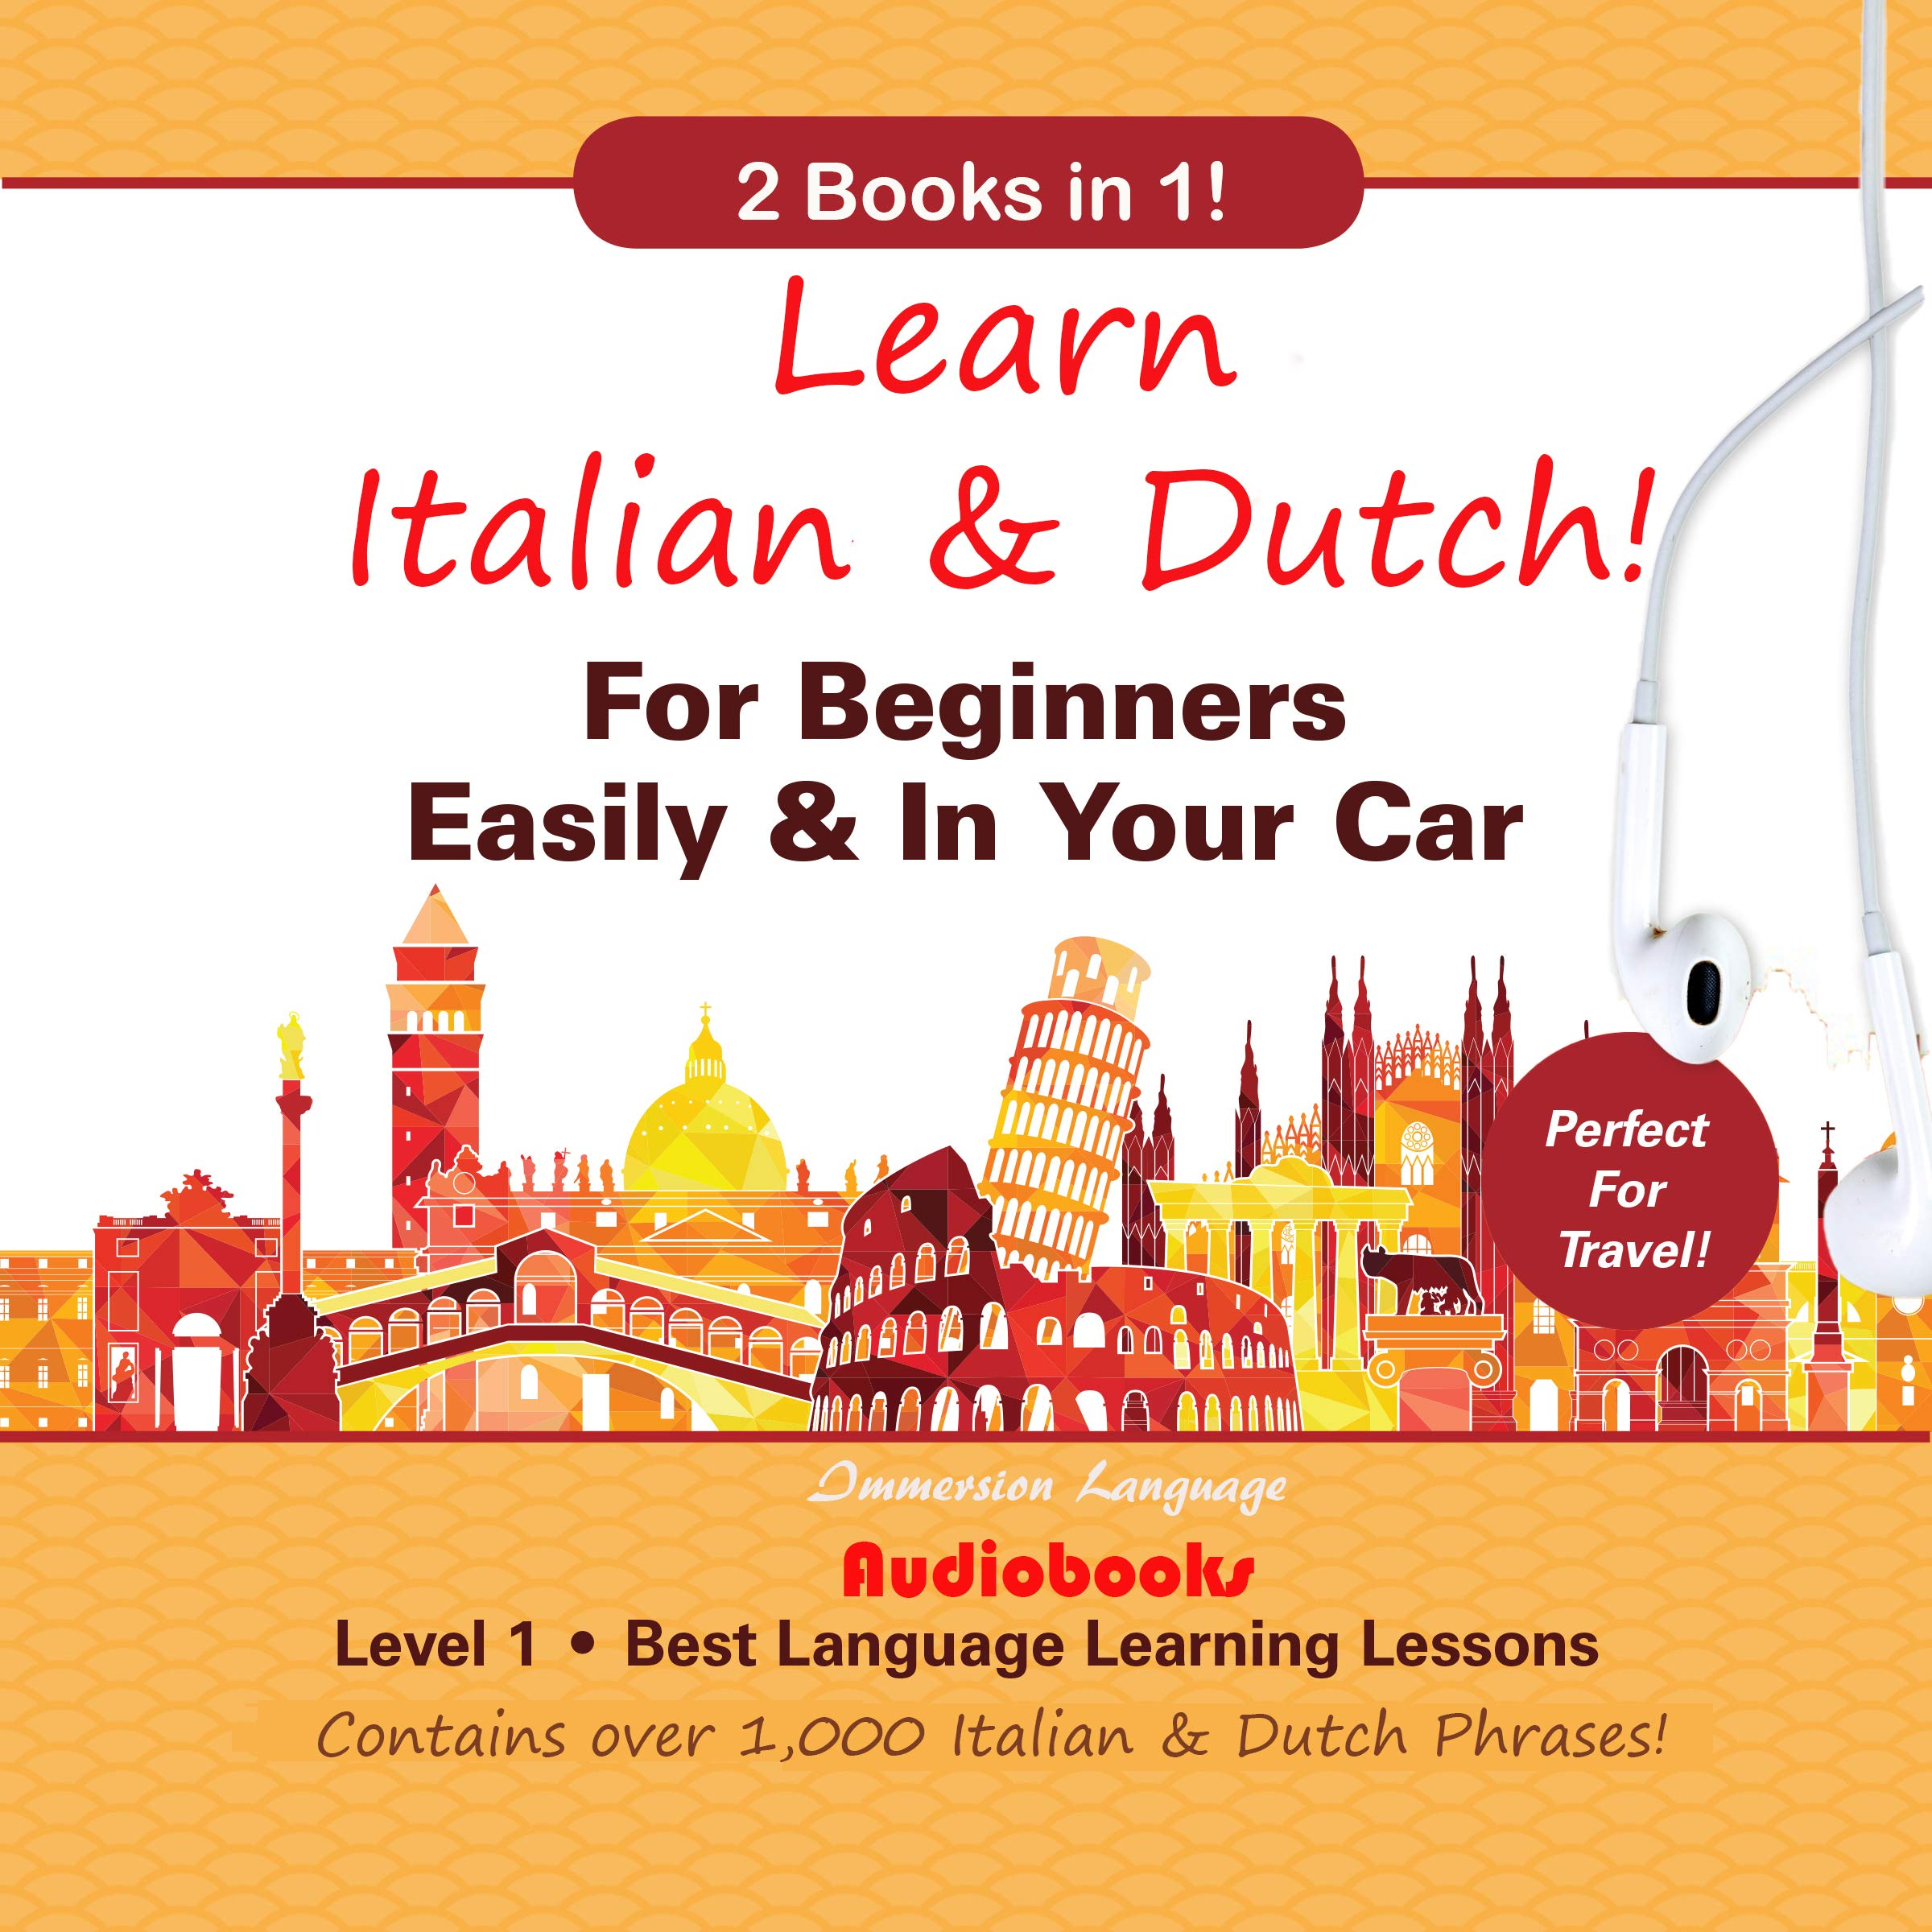 Learn Italian & Dutch! For Beginners Easily and In Your Car 2 Books in 1! Level 1 Best Language Learning Lessons Contains Over 1,000 Italian & Dutch Phrases